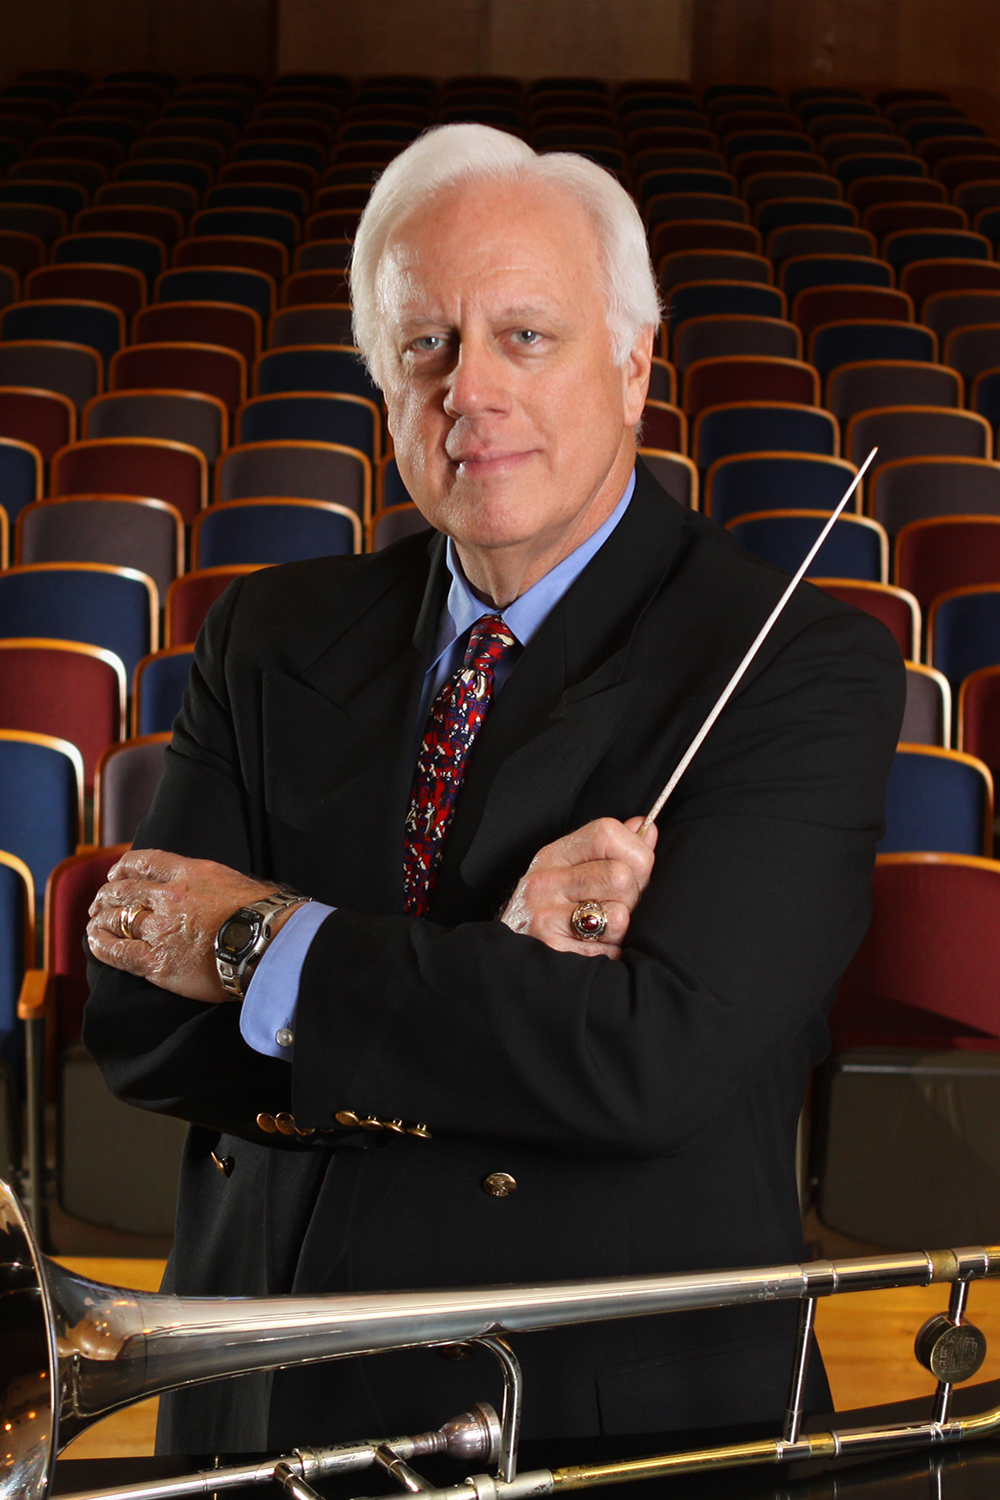 Orchestra celebrates Hansford's final concert before retiring